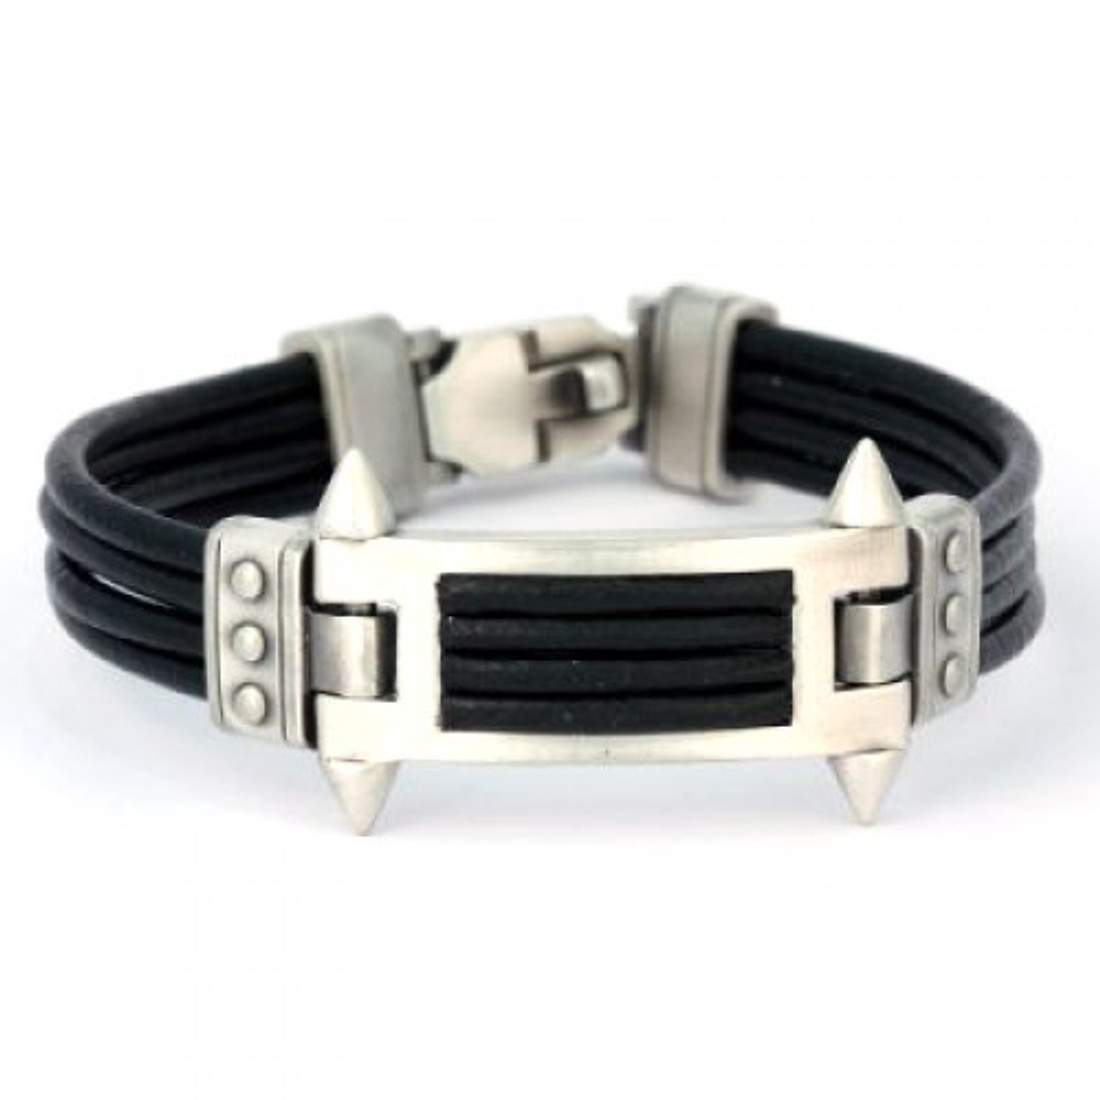 Bico leather pewter bracelet.